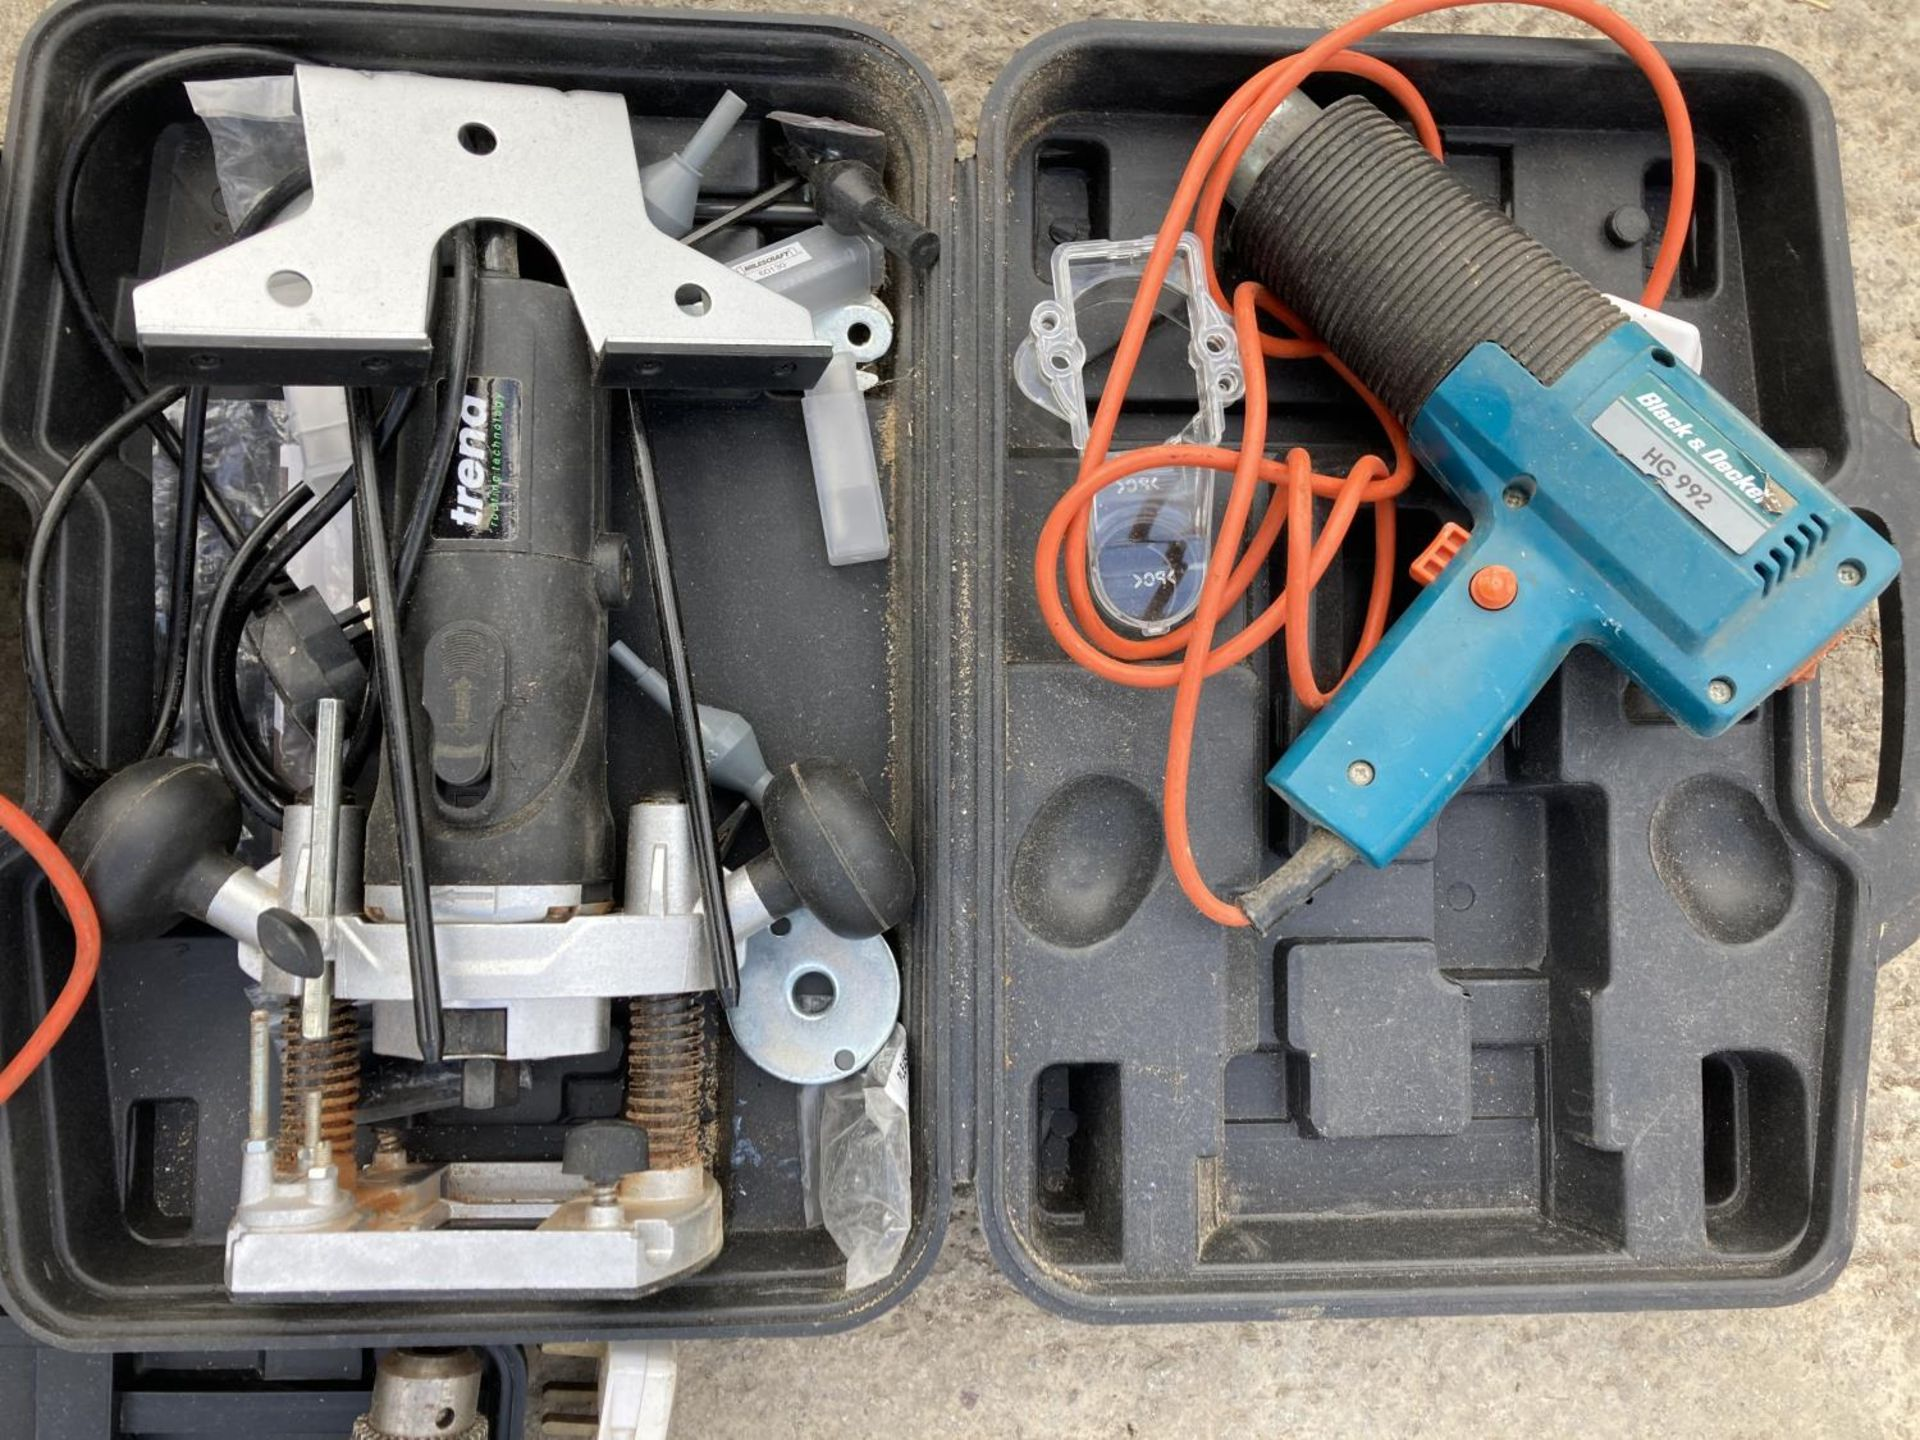 SIX ITEMS OF POWER TOOLS TO INCLUDE THREE BLACK AND DECKER DRILLS, SANDER ETC NO VAT - Image 4 of 4